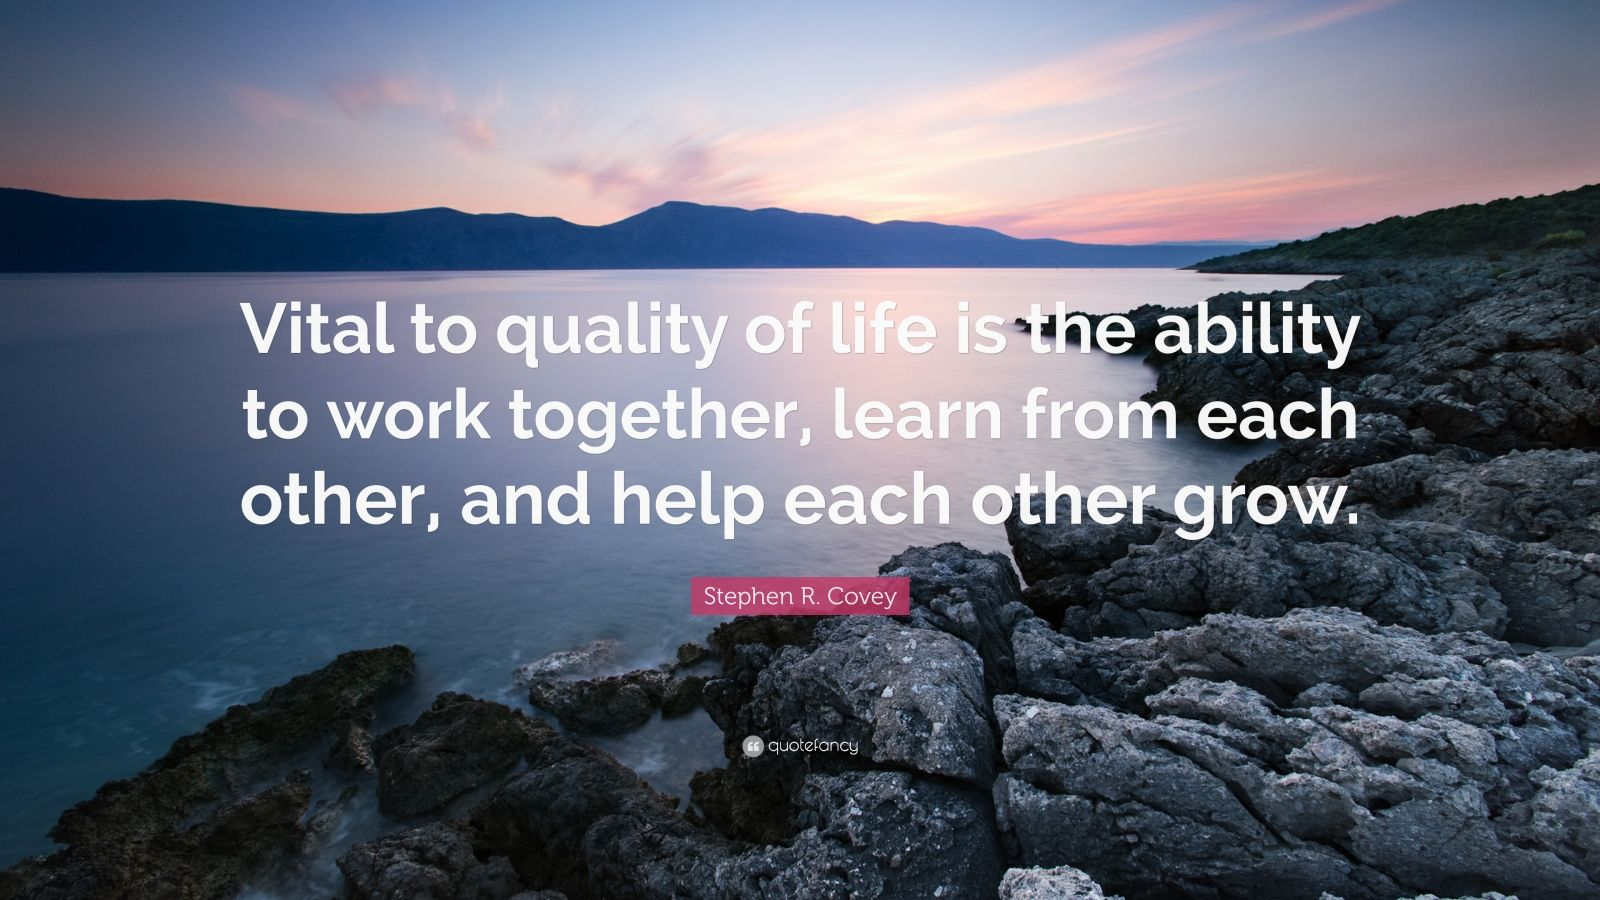 """Stephen R. Covey Quote: """"Vital to quality of life is the ability to work together, learn from each other, and help each other grow."""""""